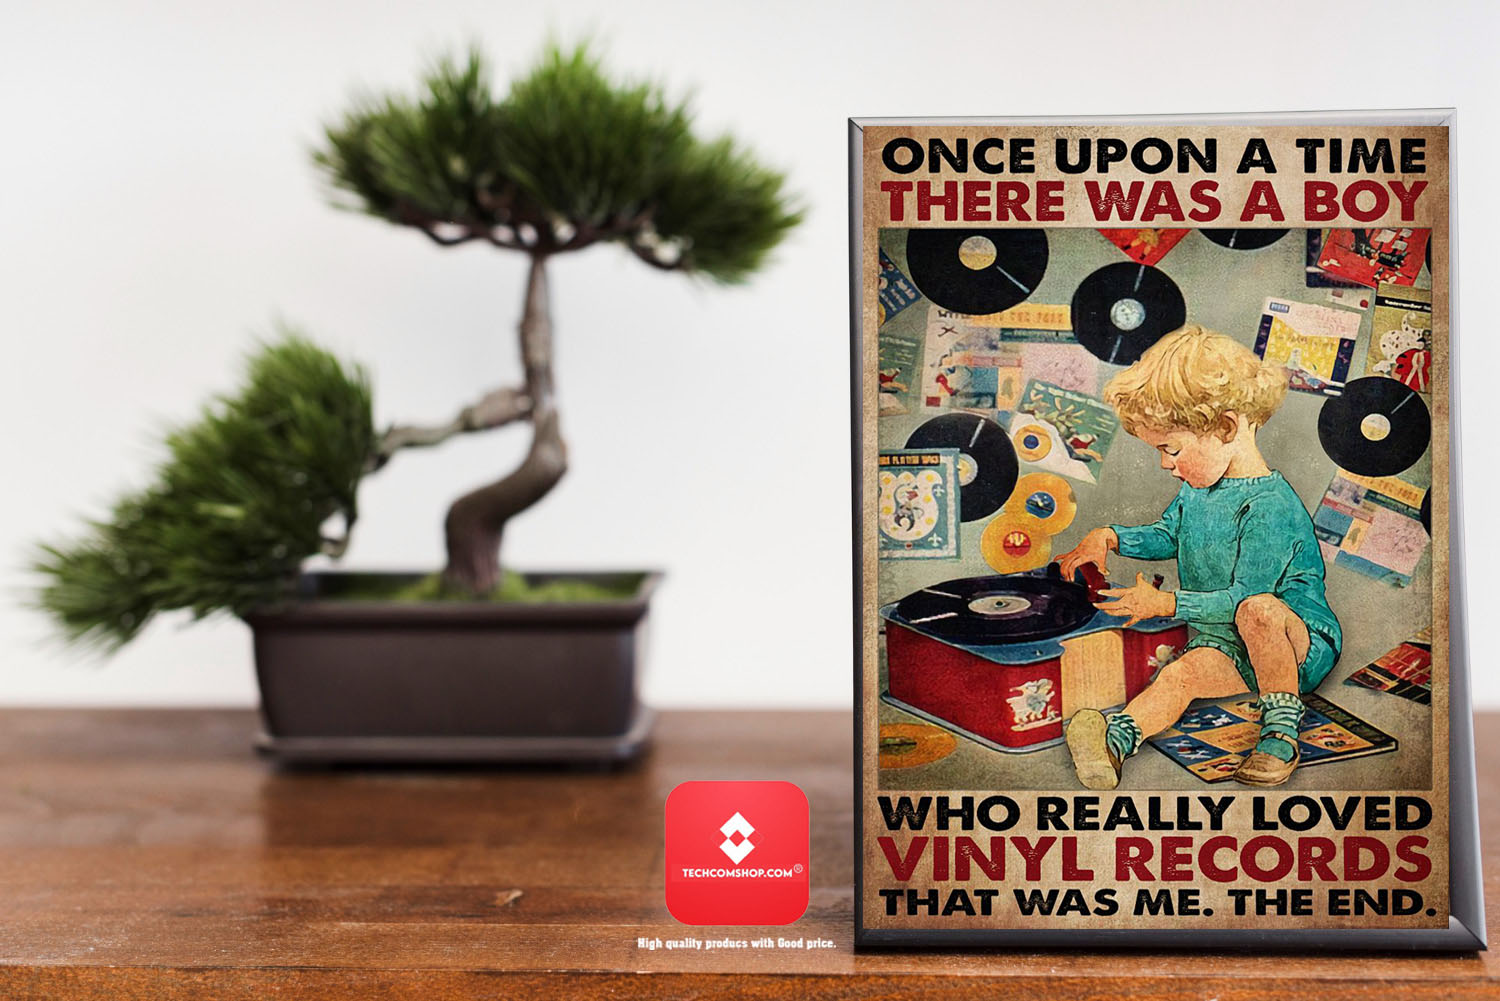 Once upon a time there was a boy who really loved vinyl records poster 7